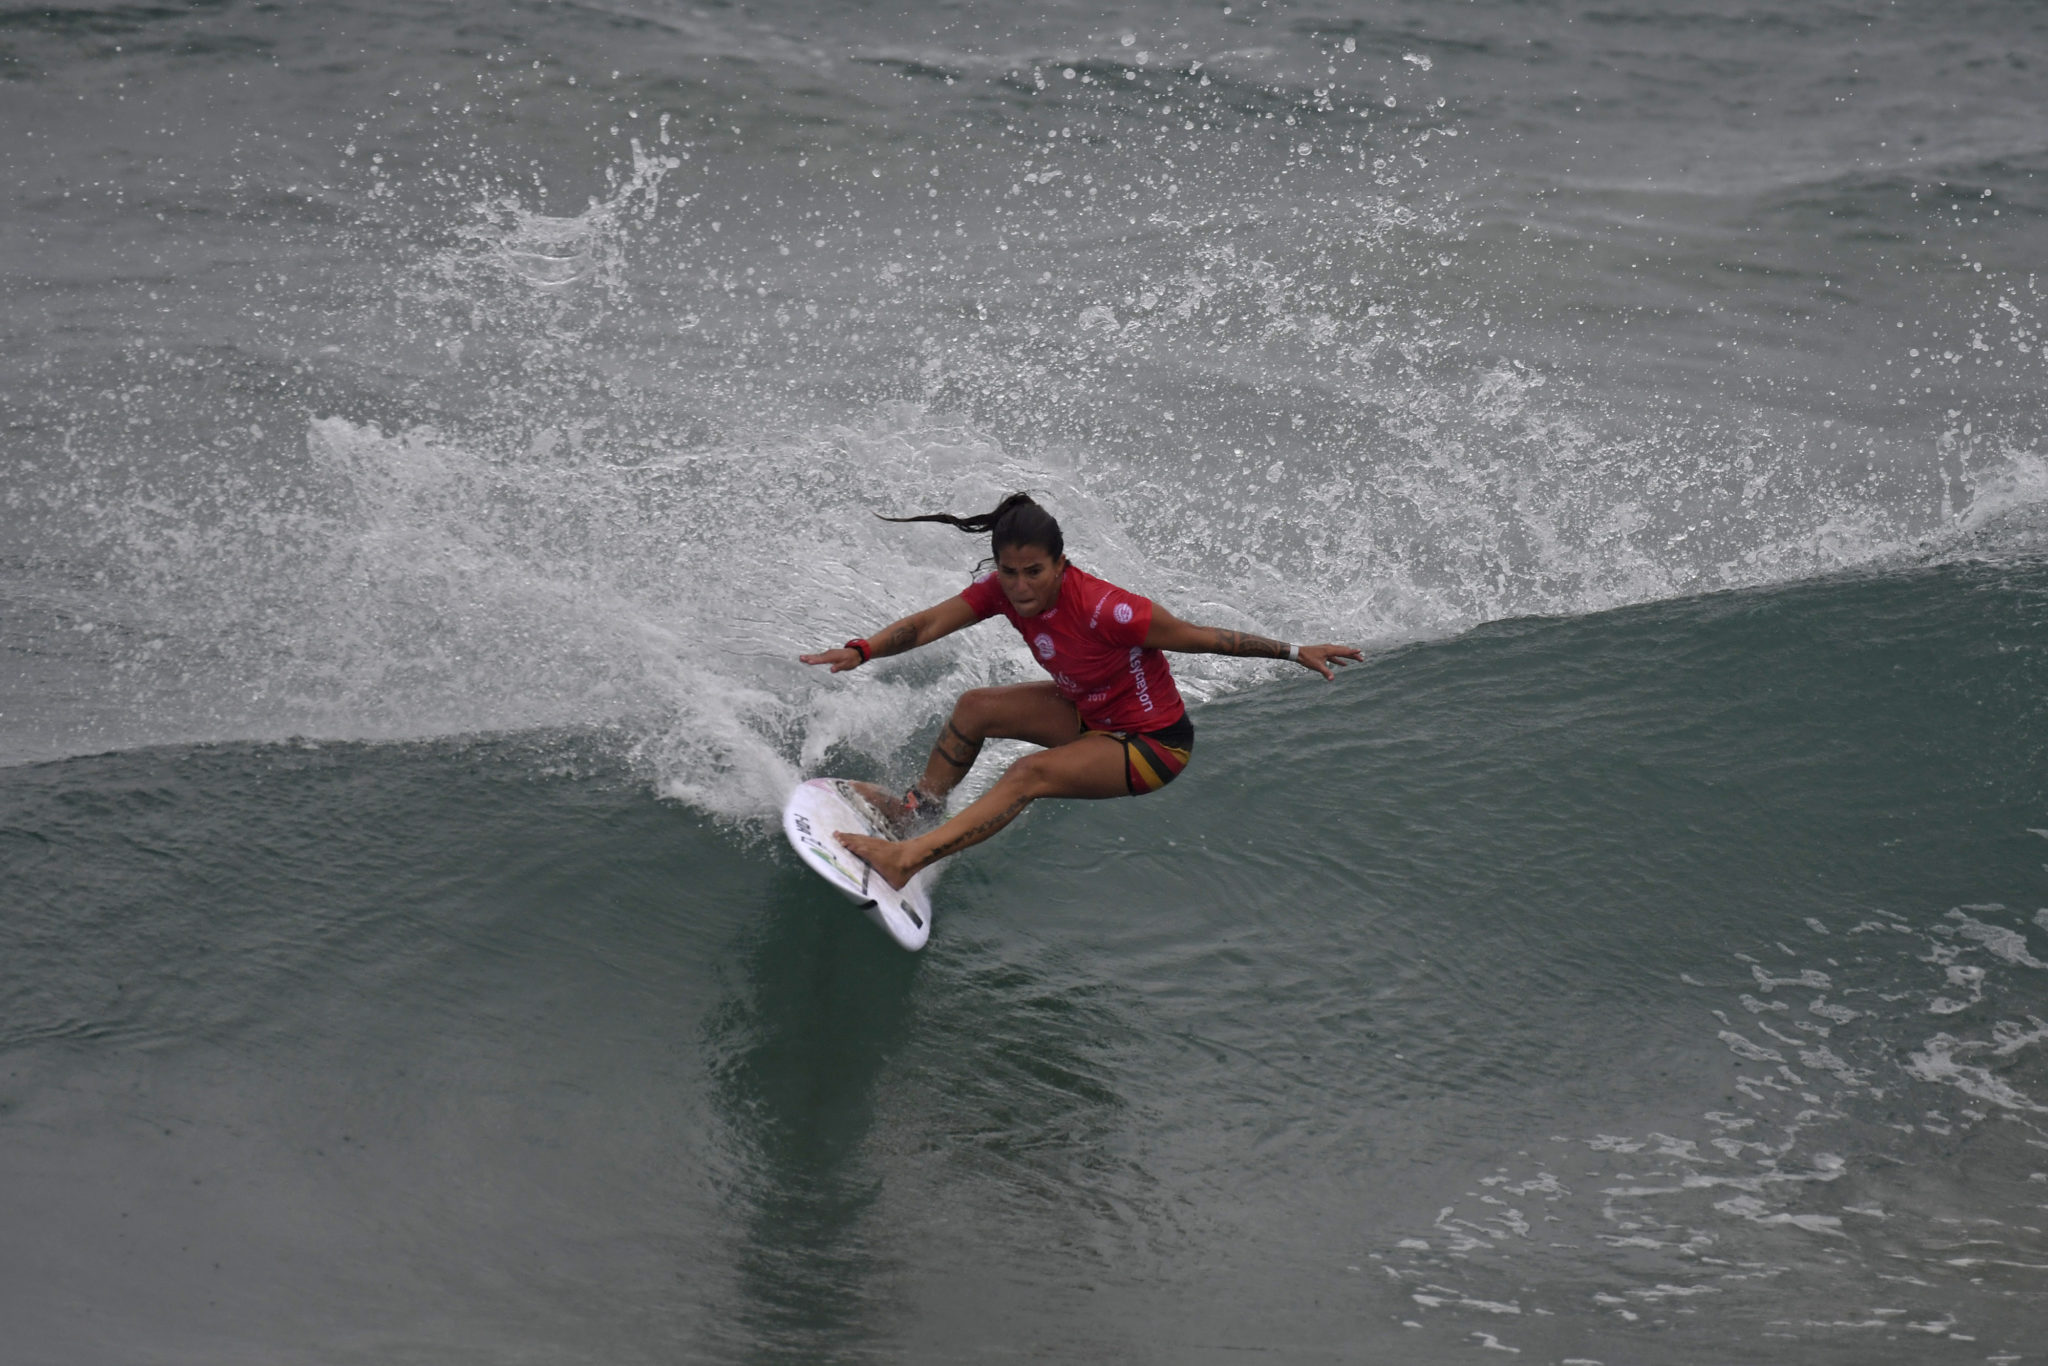 Silvana Lima placed second in Heat 3 of Round 3 at the Girls Make Your Call Women's Pro.